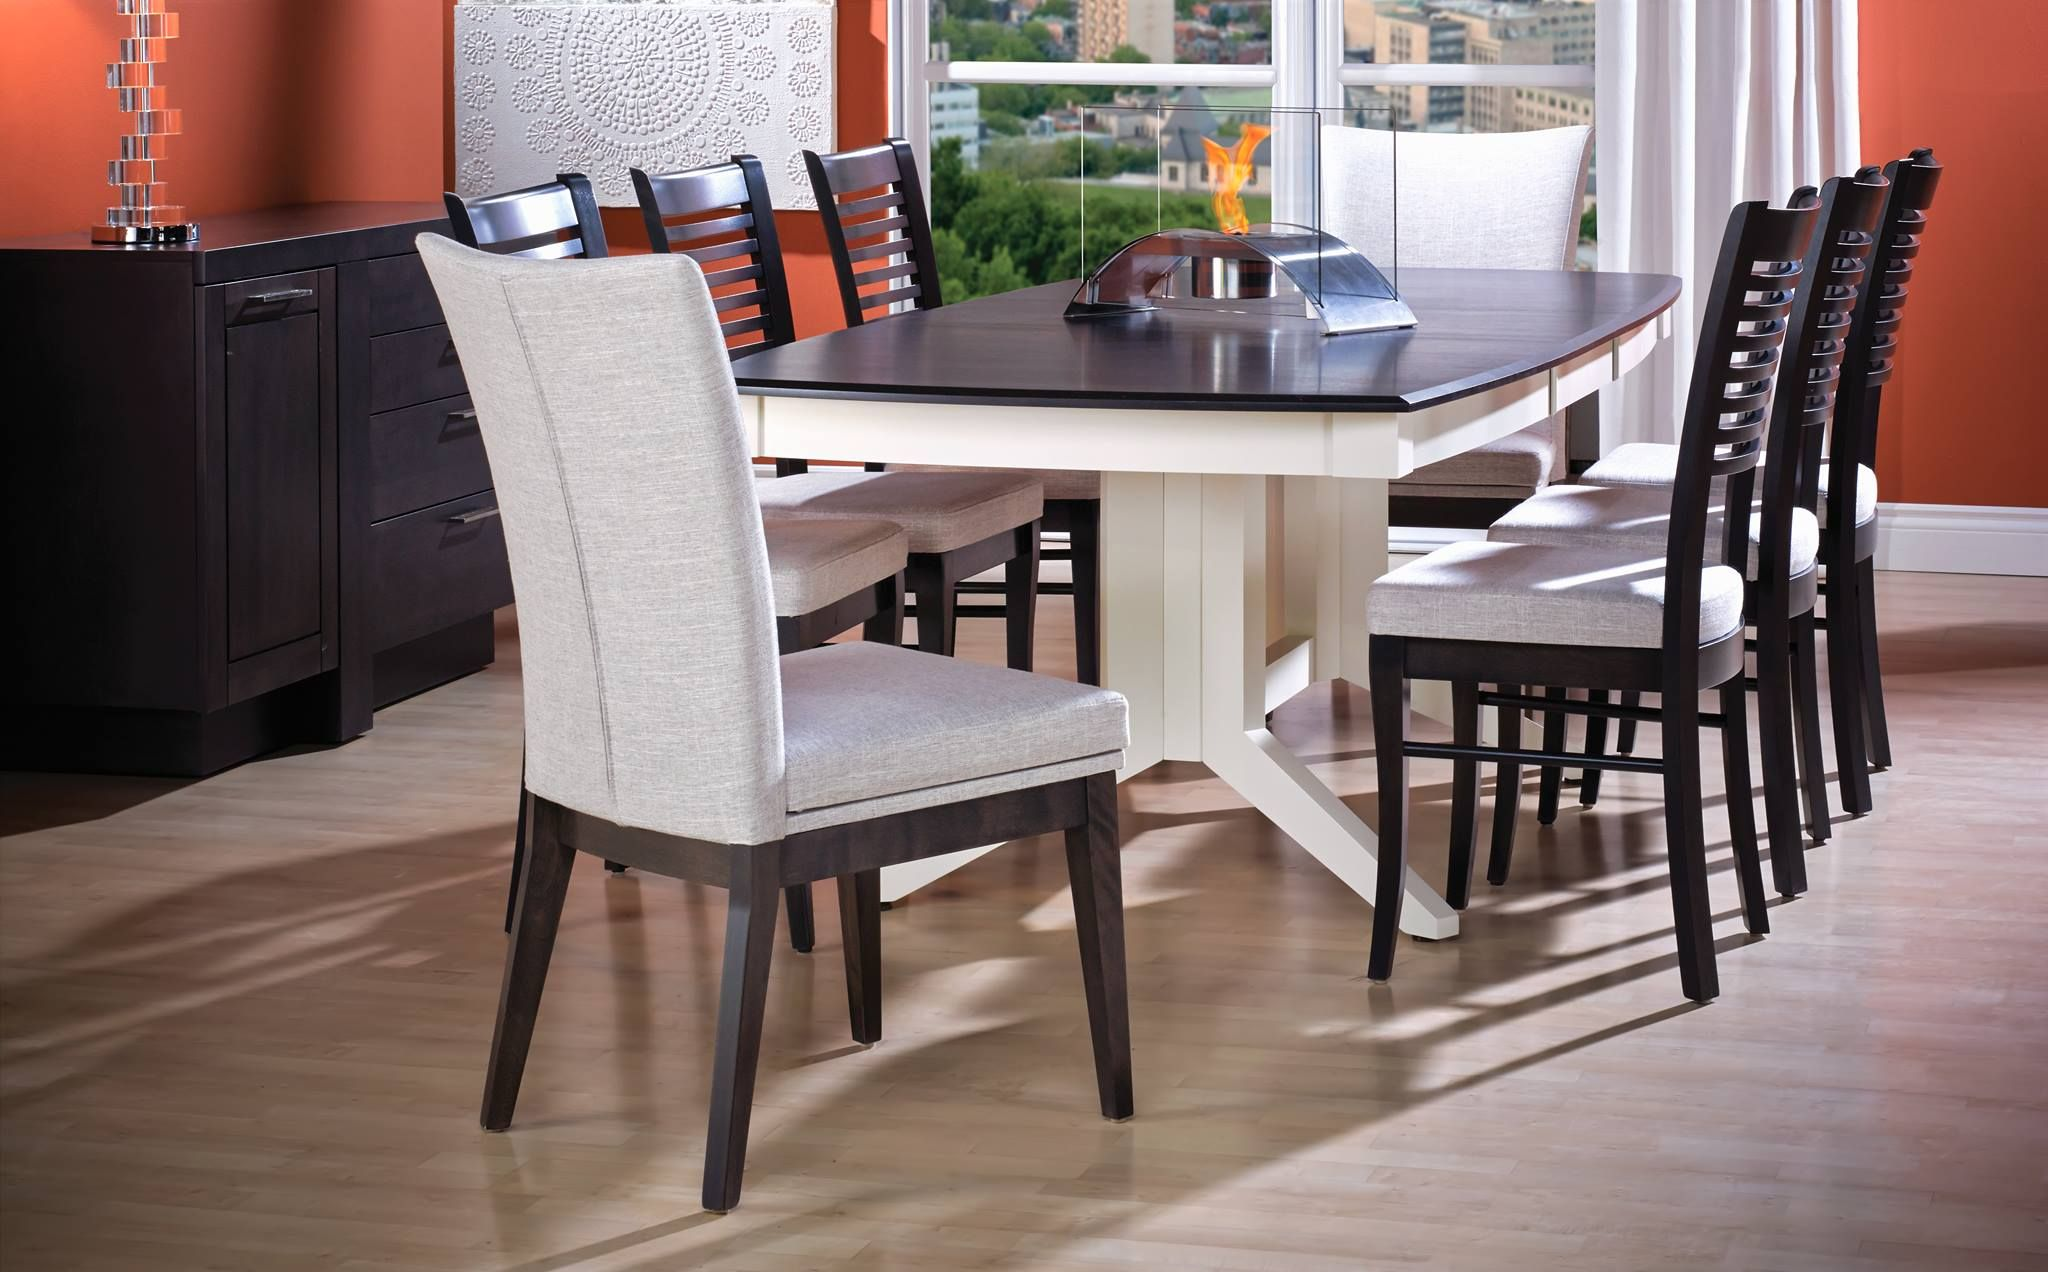 Fantastic Furniture For Sale In Columbus Ohio That Will Transform Your Caraccident5 Cool Chair Designs And Ideas Caraccident5Info